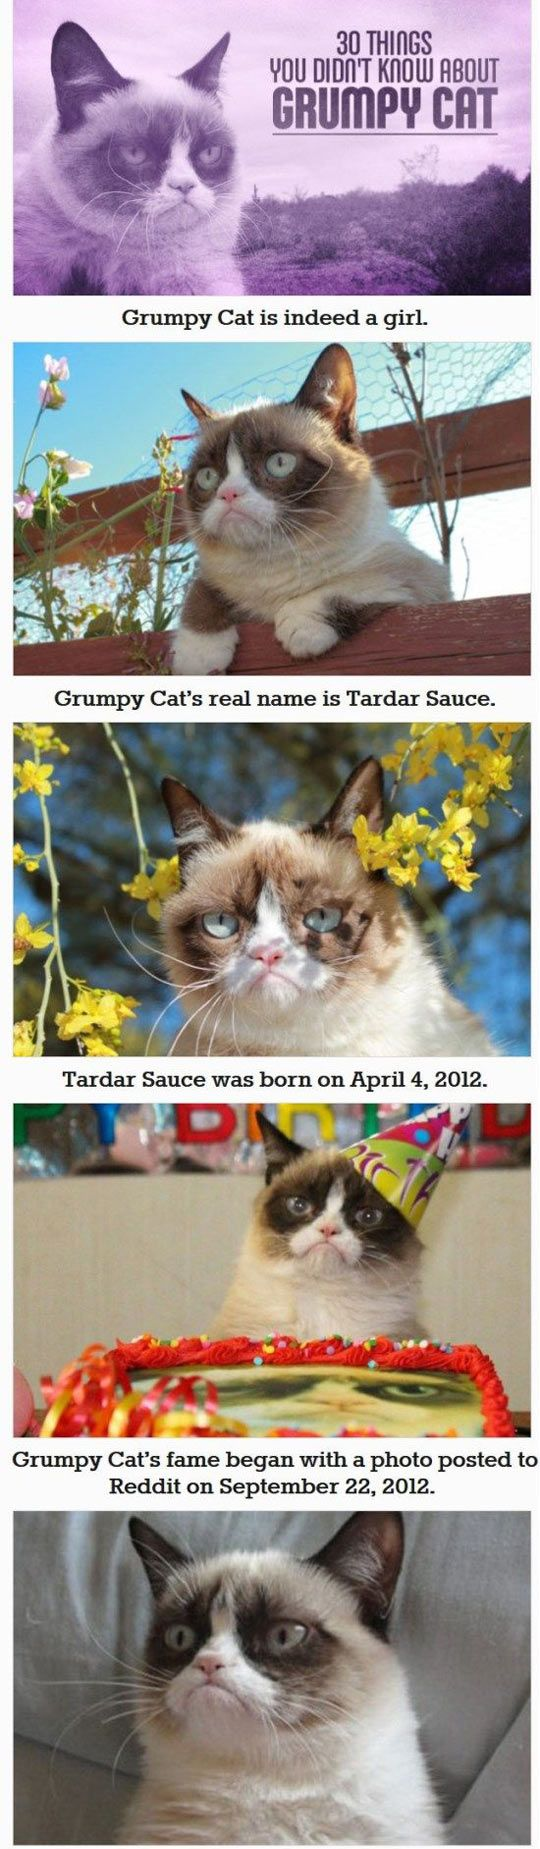 30 things you didn't know about grumpy cat… Okay, so I knew some of these... Adorbs.: Grumpy Cat Humor, Grumpy Kitty, Grumpycat, 30 Things, Funny Grumpy Cat, Grumpy Cat Facts, Didnt